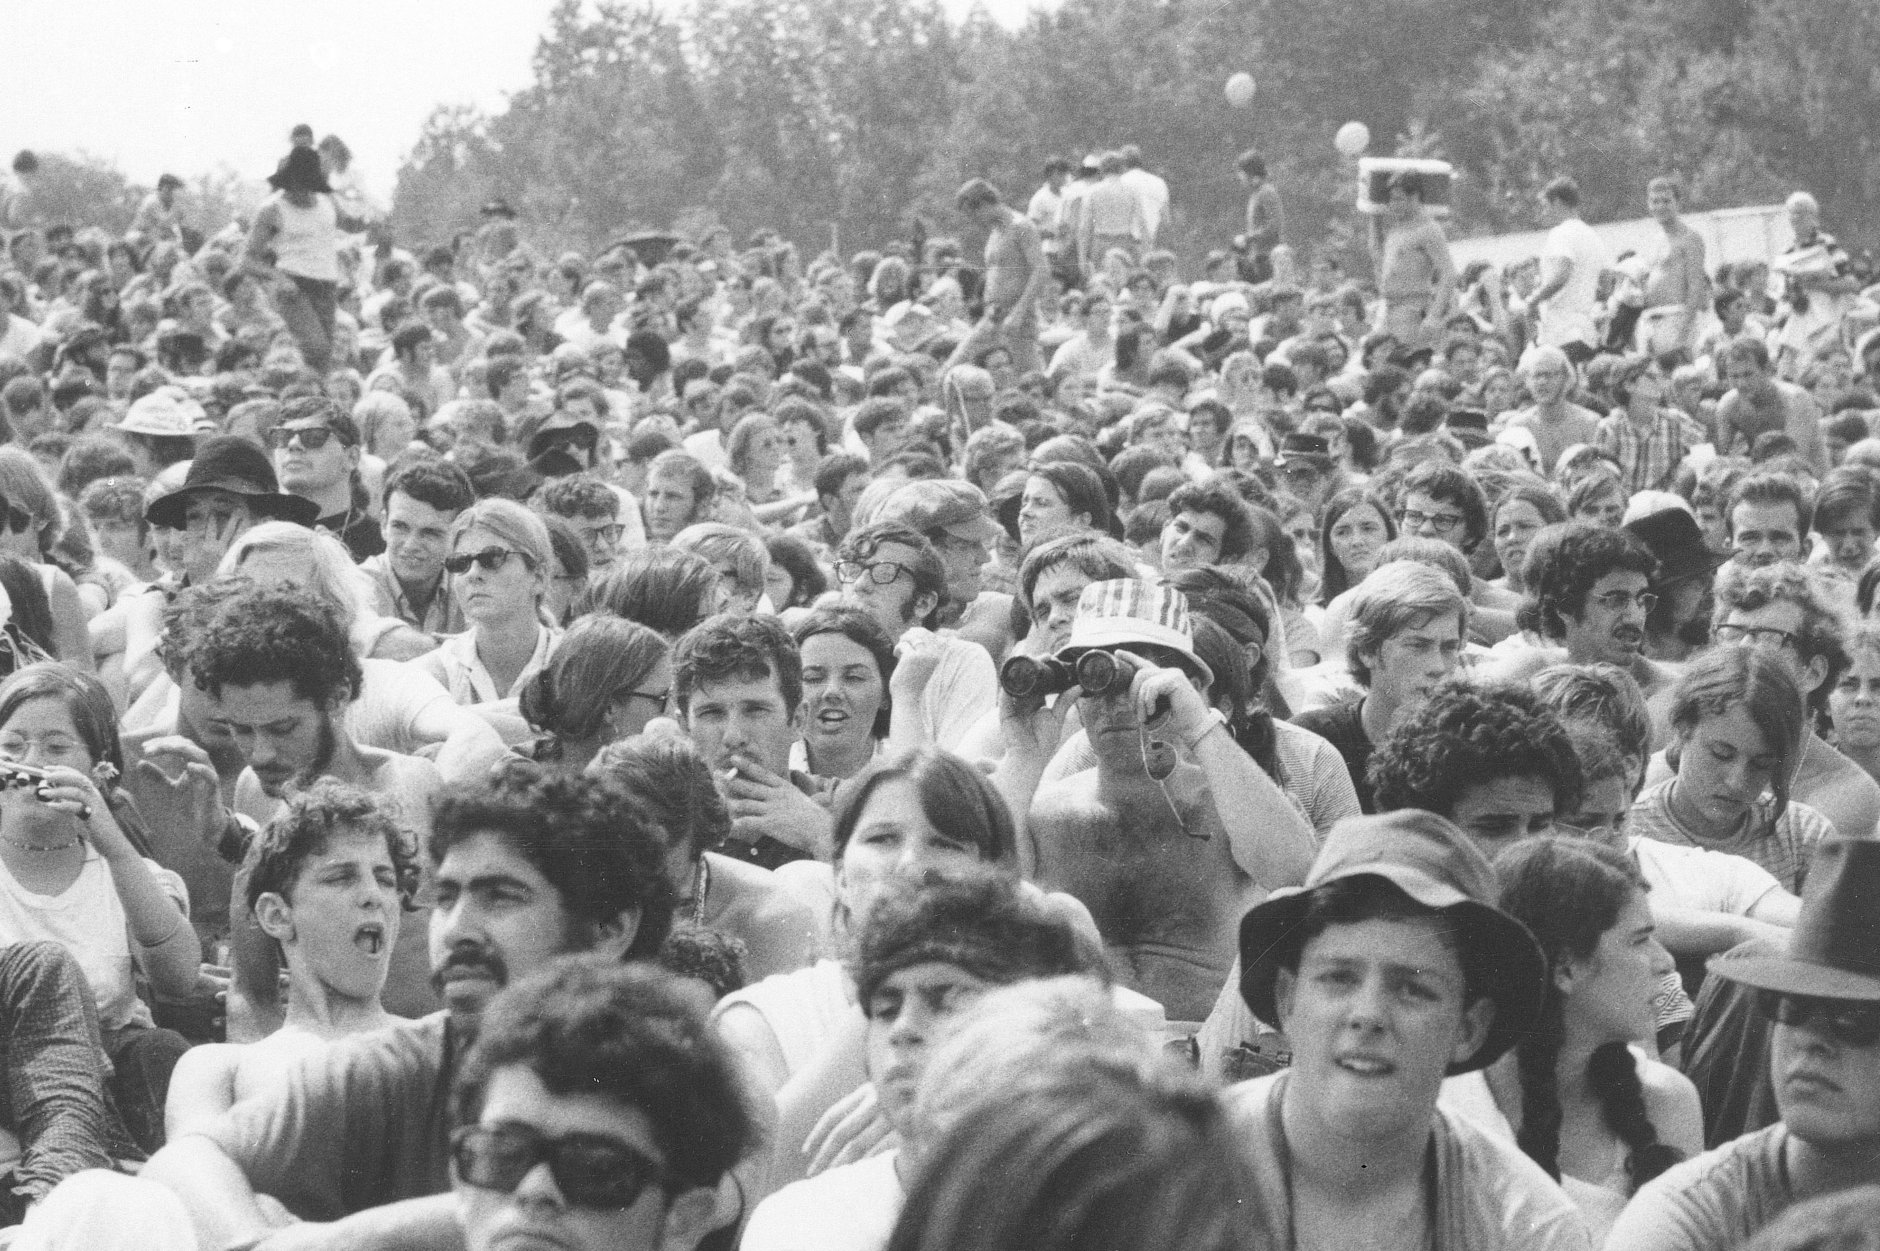 """This is a view of part of the crowd at the Woodstock Music and Arts Festival held on a 600-acre pasture in the Catskill Mountains near White Lake in Bethel, N.Y., in Aug. 1969.  The festival, billed as """"Thee Days of Peace and Music,"""" started on Friday, Aug. 15.  More than 450,000 persons attended.  (AP Photo)"""